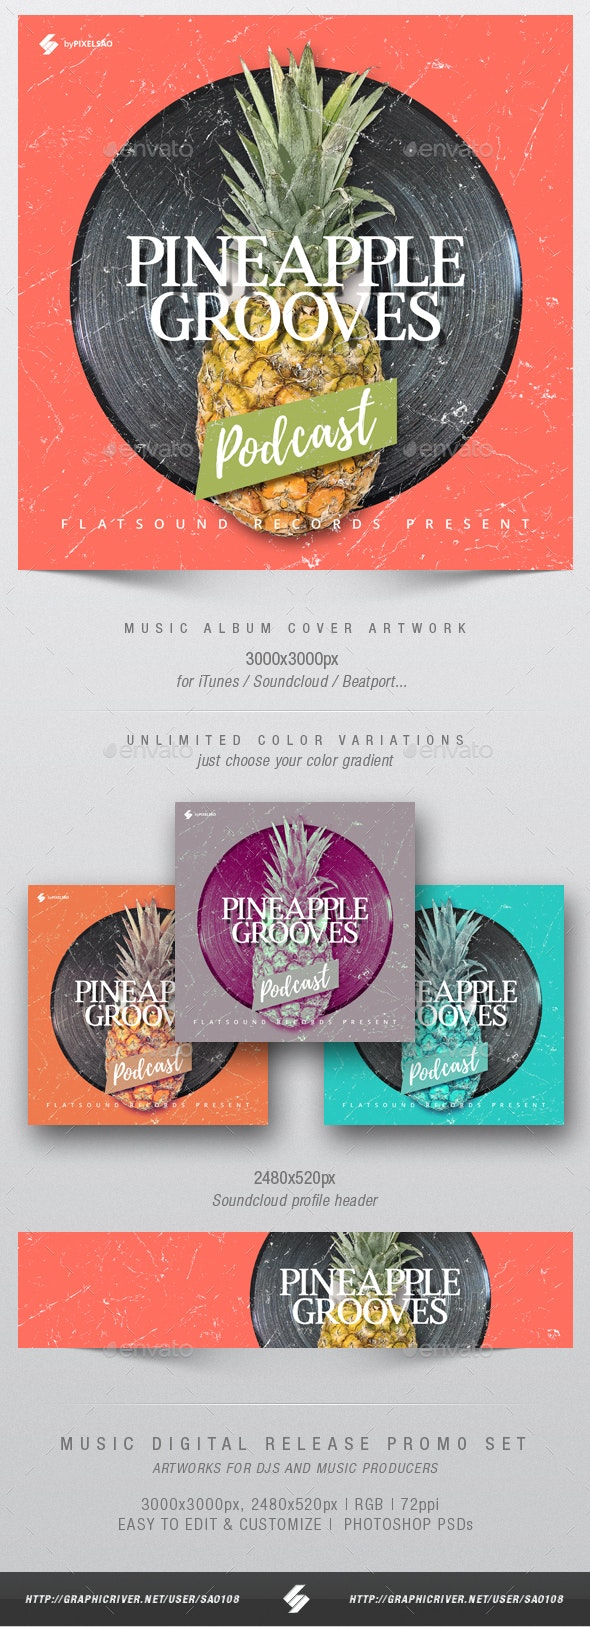 Pineapple Grooves - Audio Podcast Cover Design Template - Miscellaneous Social Media